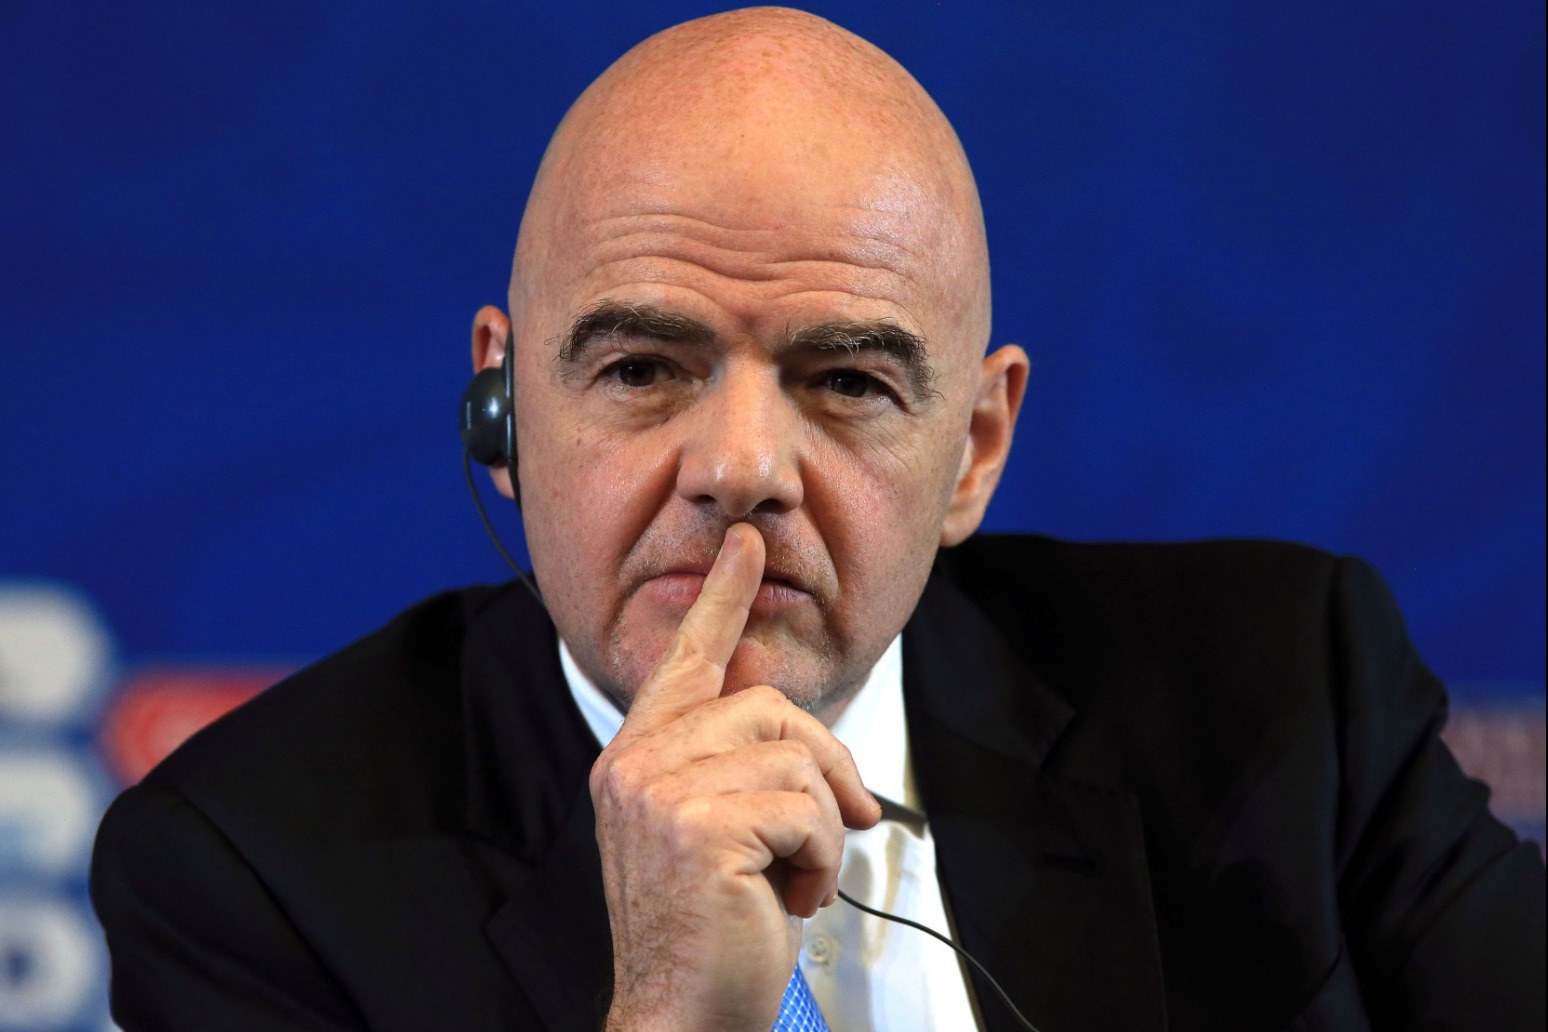 FIFA PRESIDENT INFANTINO CALLS FOR NEW EFFECTIVE WAYS TO ERADICATE RACISM